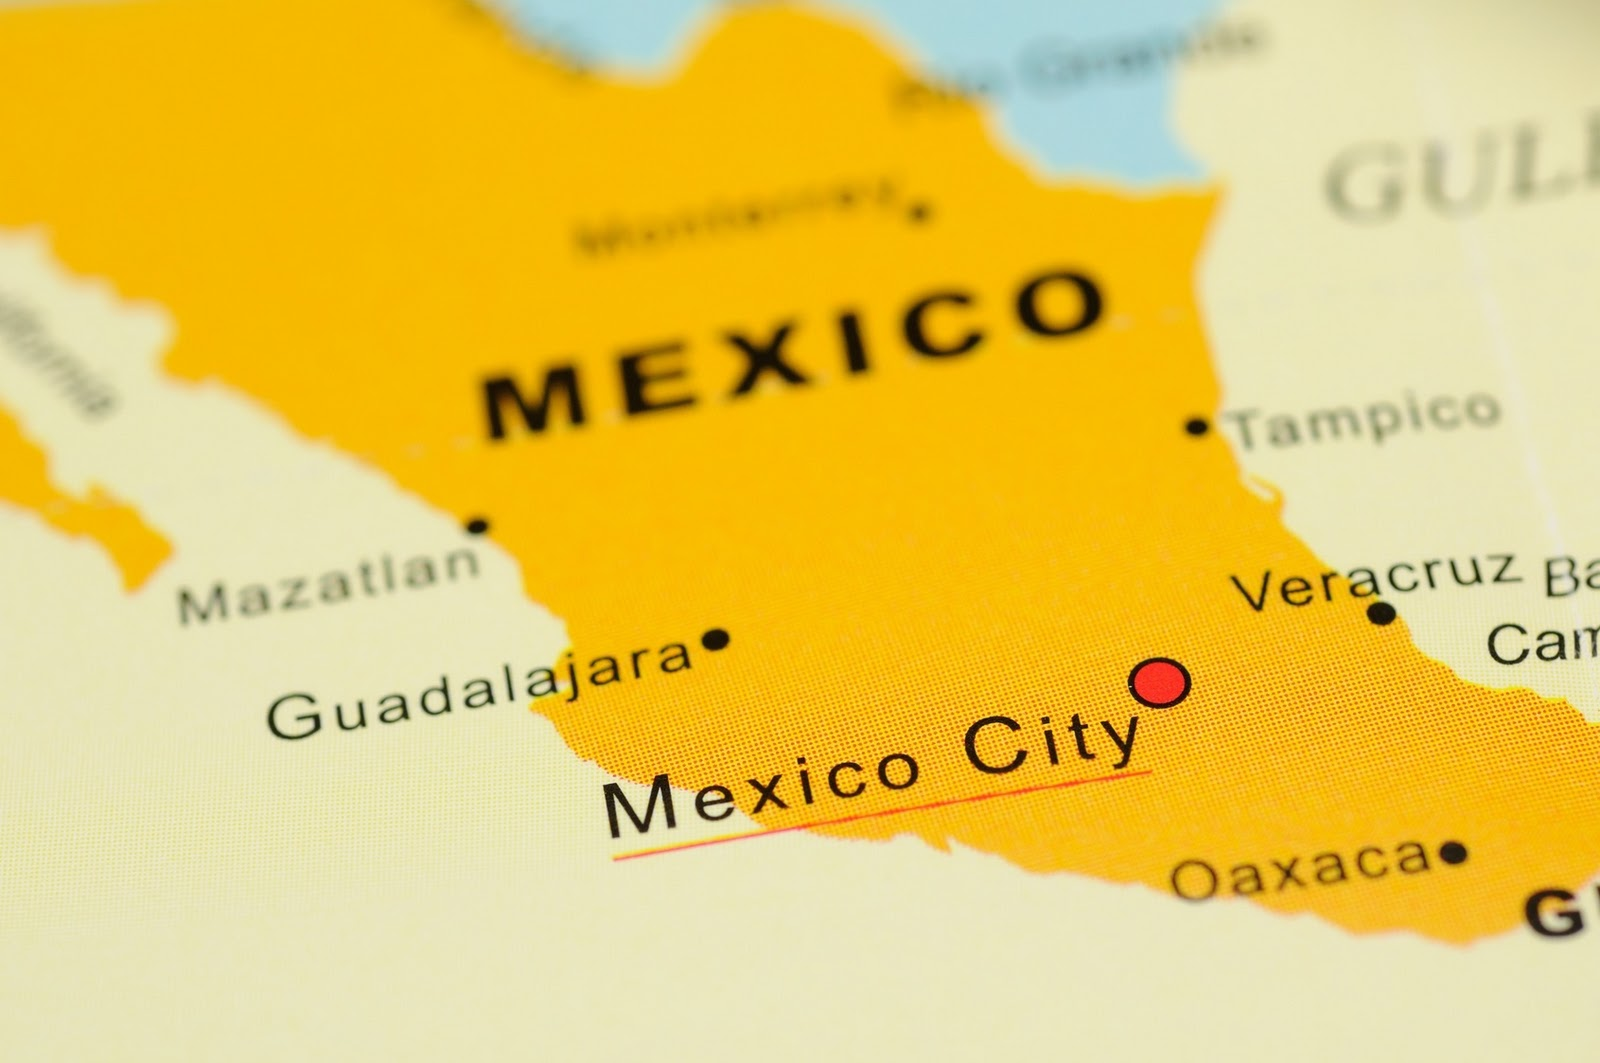 About guad help me for Travel to mexico city